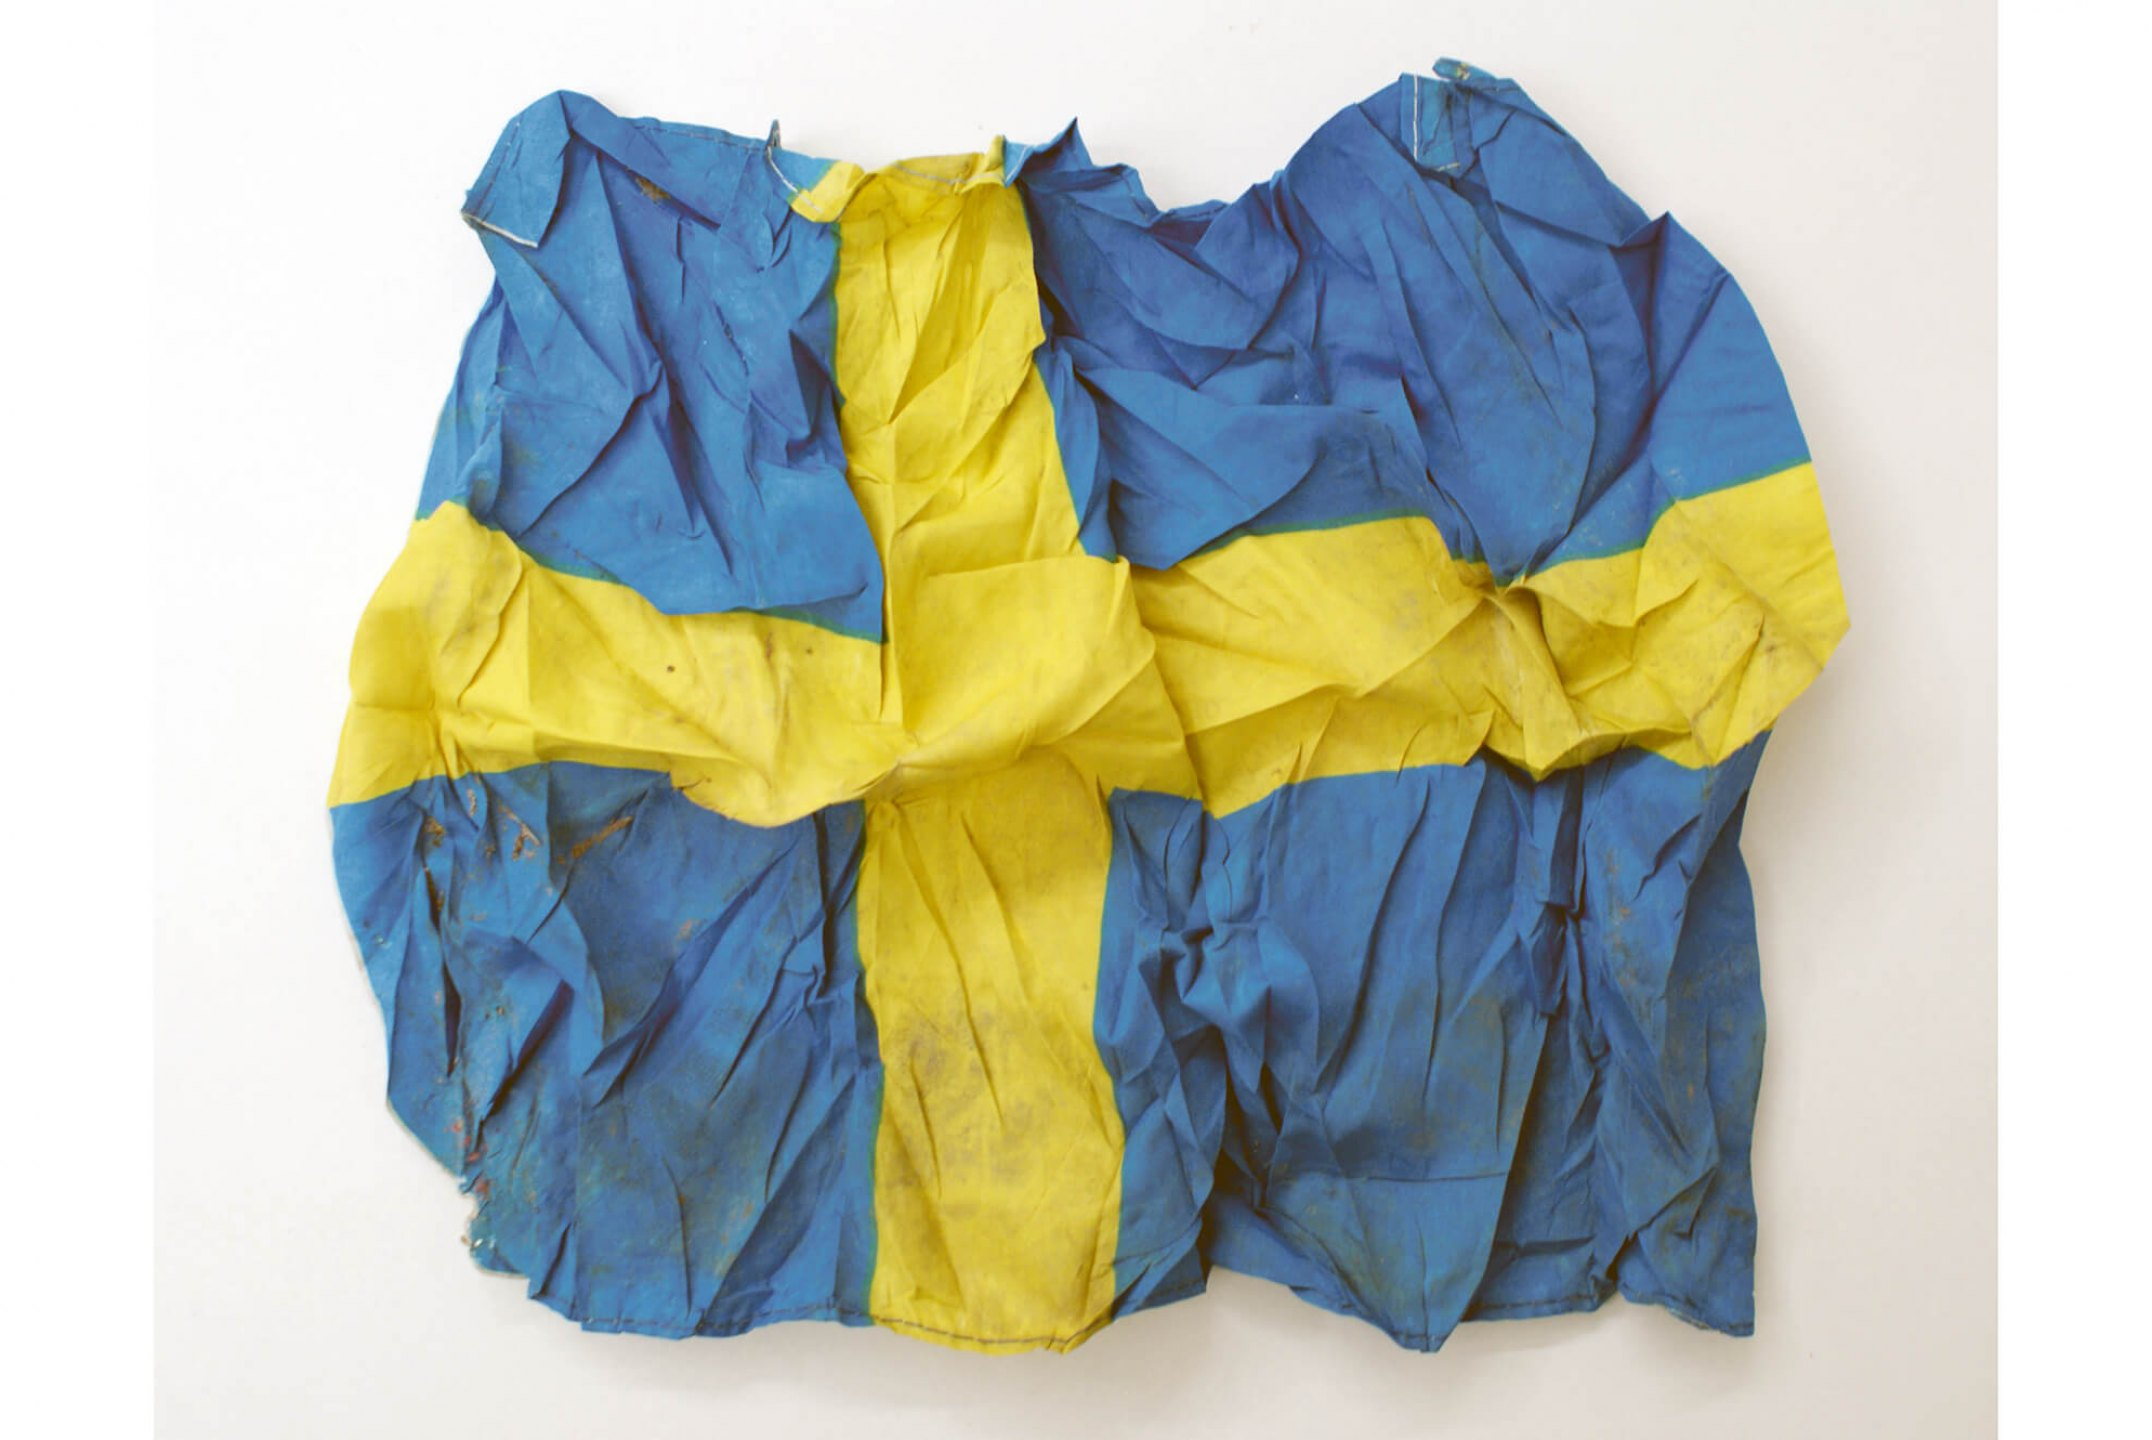 Runo lagomarsino,<em>In Every  Step There Is a Movement</em>, 2014,     Swedish flag, 39 × 44 × 7 cm - Mendes Wood DM